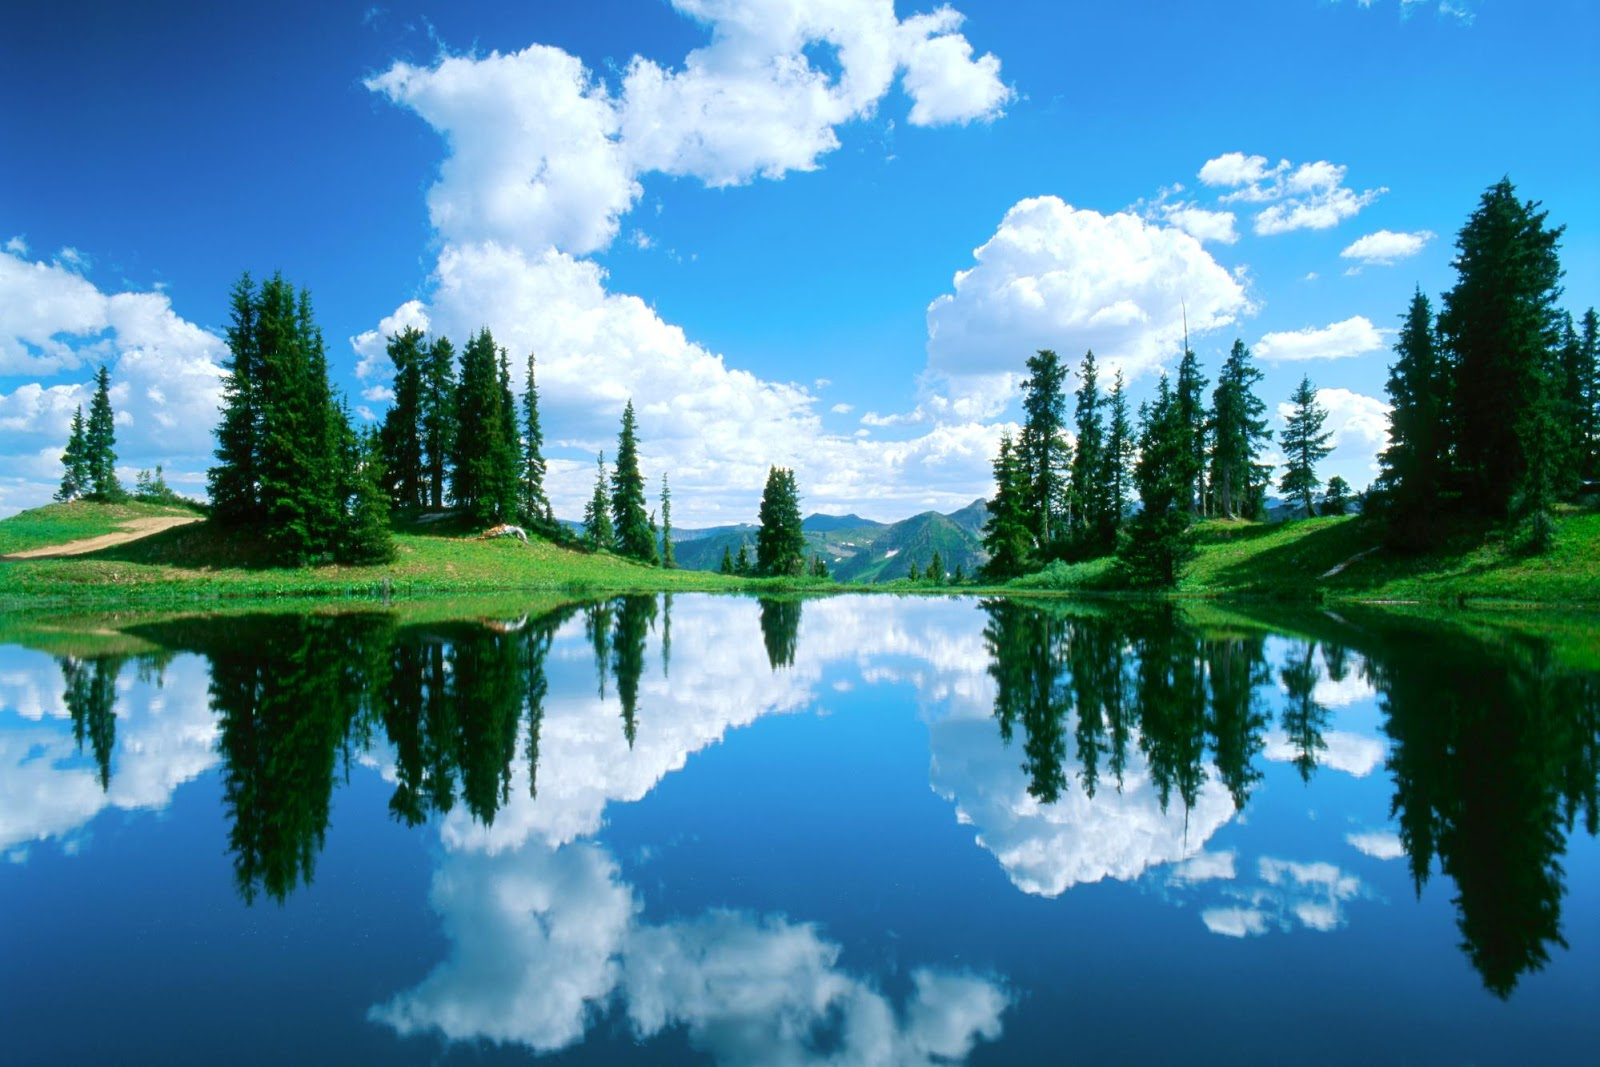 Hd wallpaper kashmir - What You Need Its Here